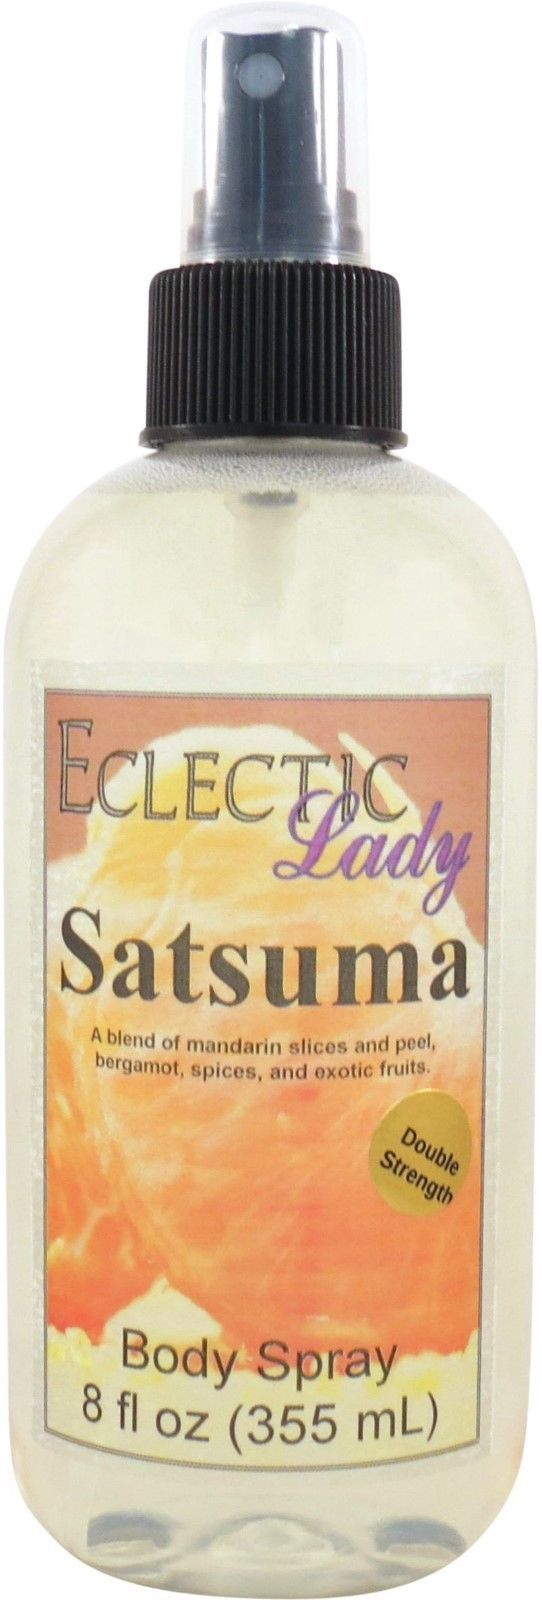 Satsuma Body Spray